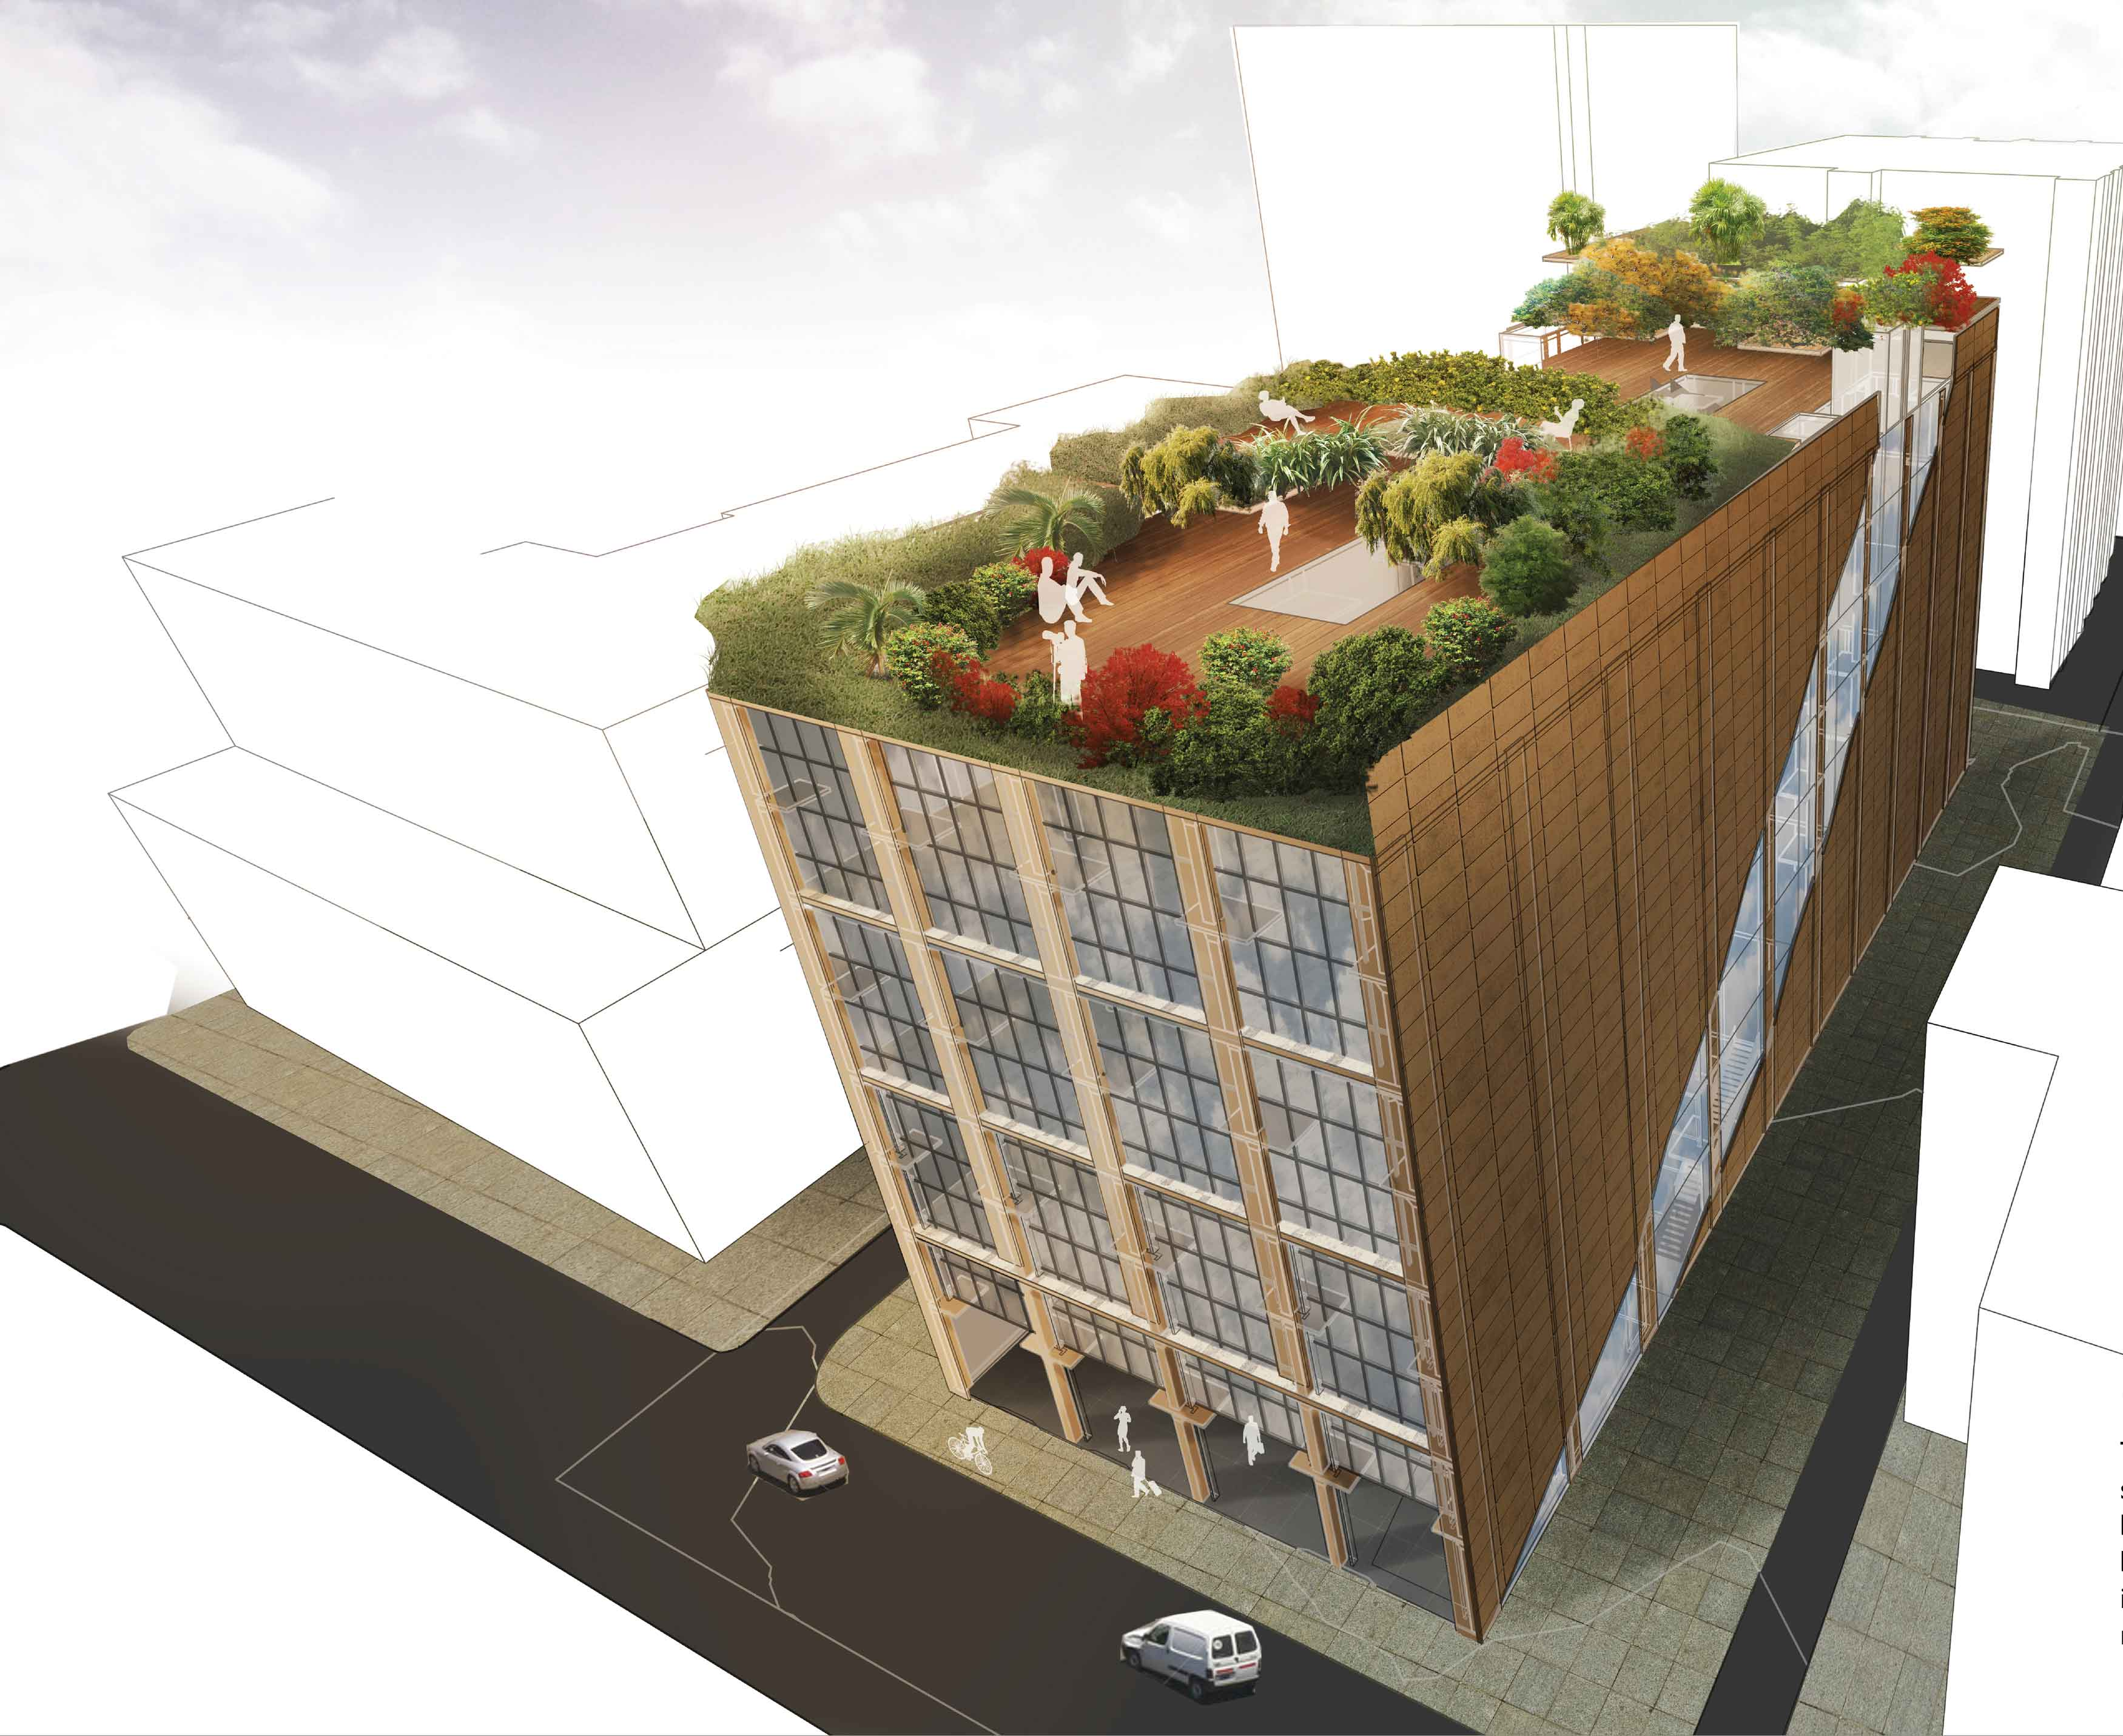 Philau Students Win Top Prizes In Blt Architects Design